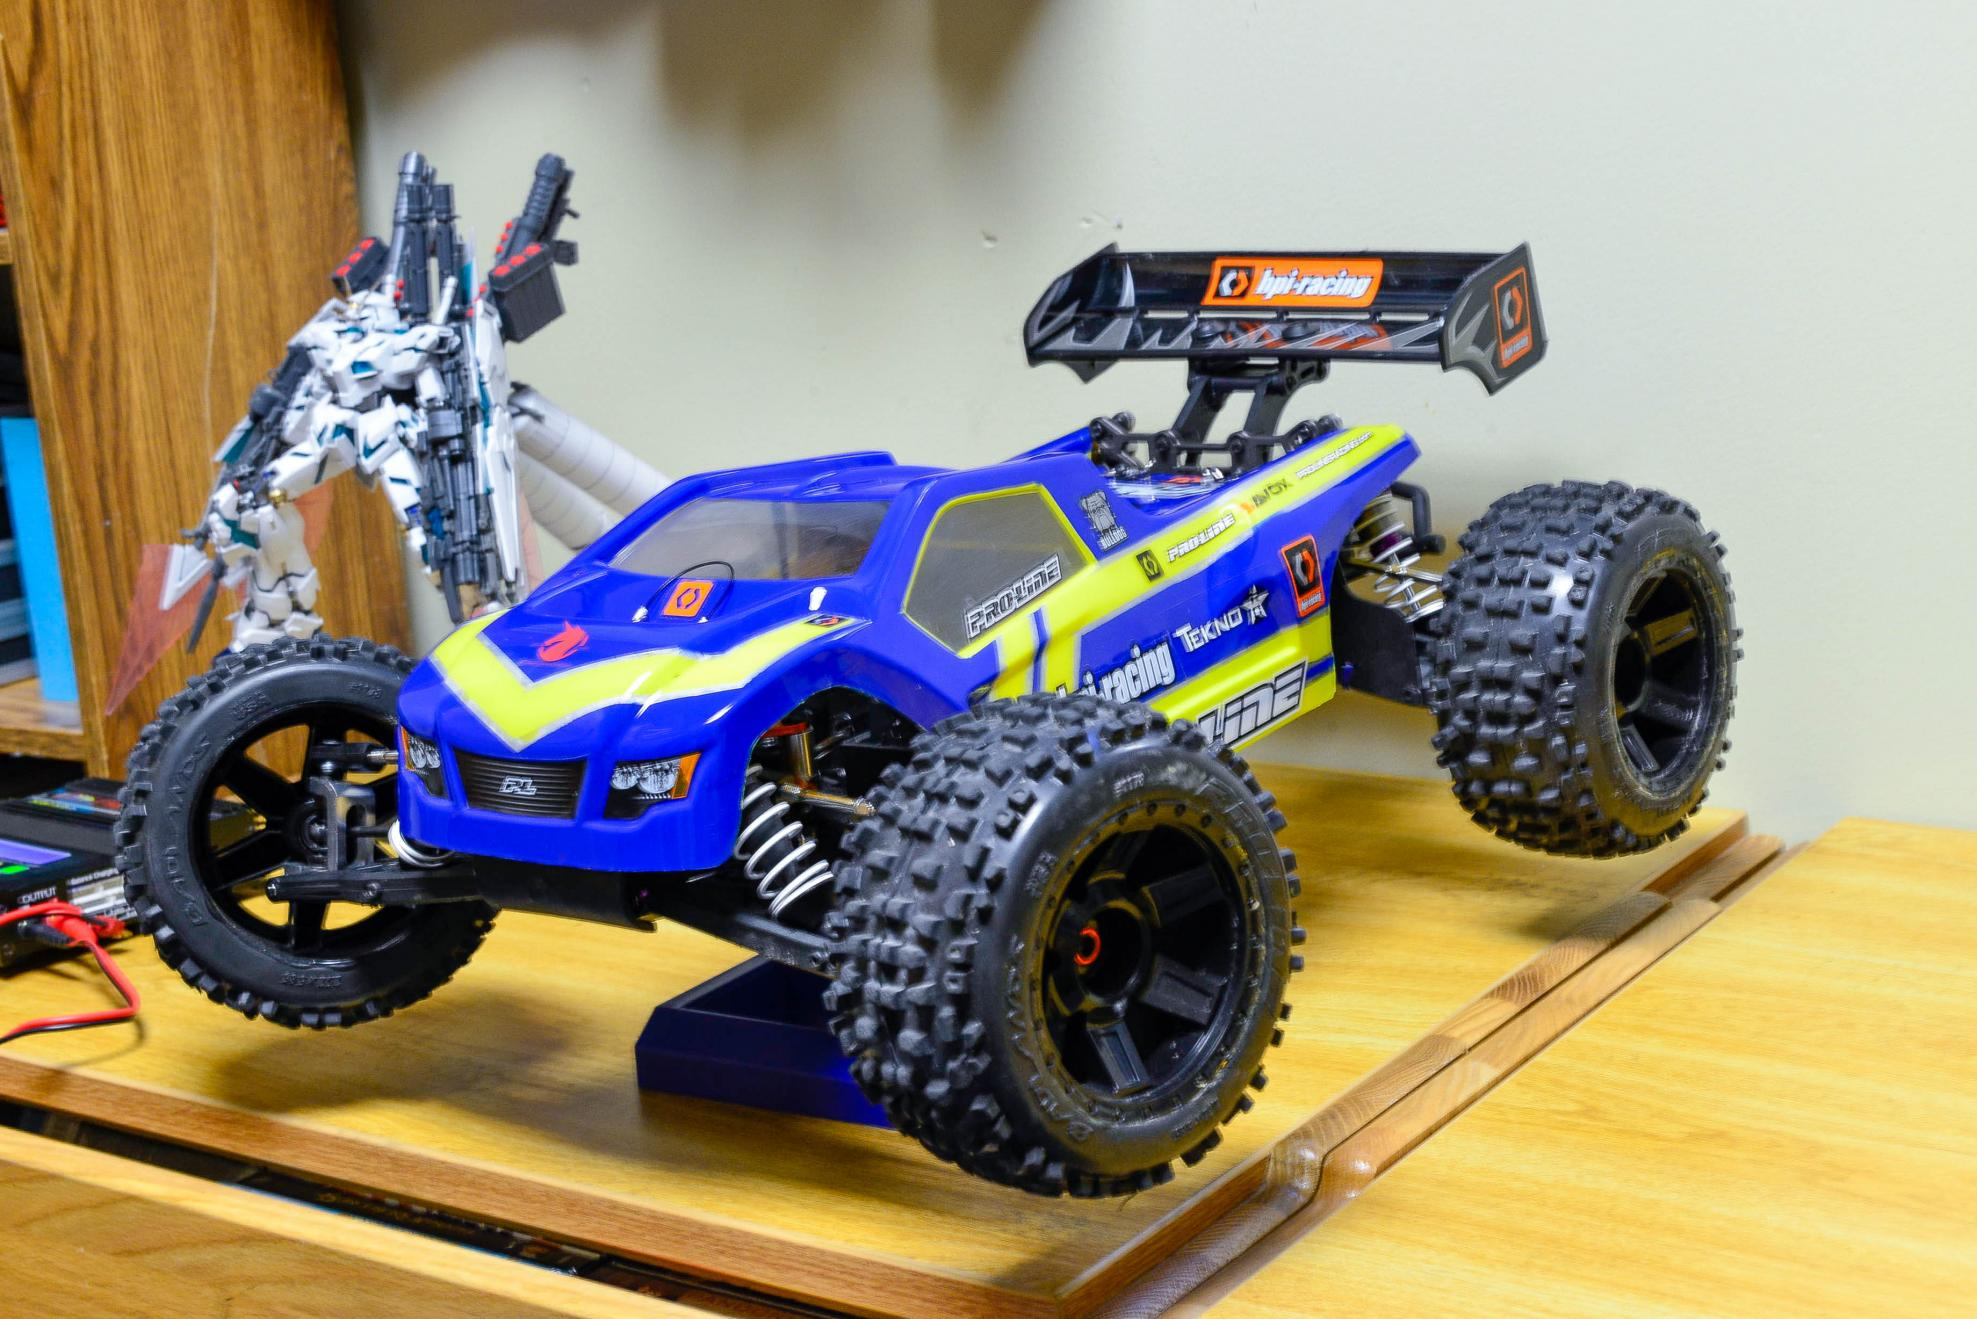 electric rc truggy with 556987 Hpi Trophy Truggy Flux 10 on 556987 Hpi Trophy Truggy Flux 10 moreover Caldera 3 0 1 10 Scale Nitro Truck 2 Speed Rc Car Blue further 1 14 Mini Rally 4wd Rtr P Los01008 additionally petrolrccars co further Traxxas Rustler Vxl 2wd With Tsm 110 Brushless Stadium Truck.